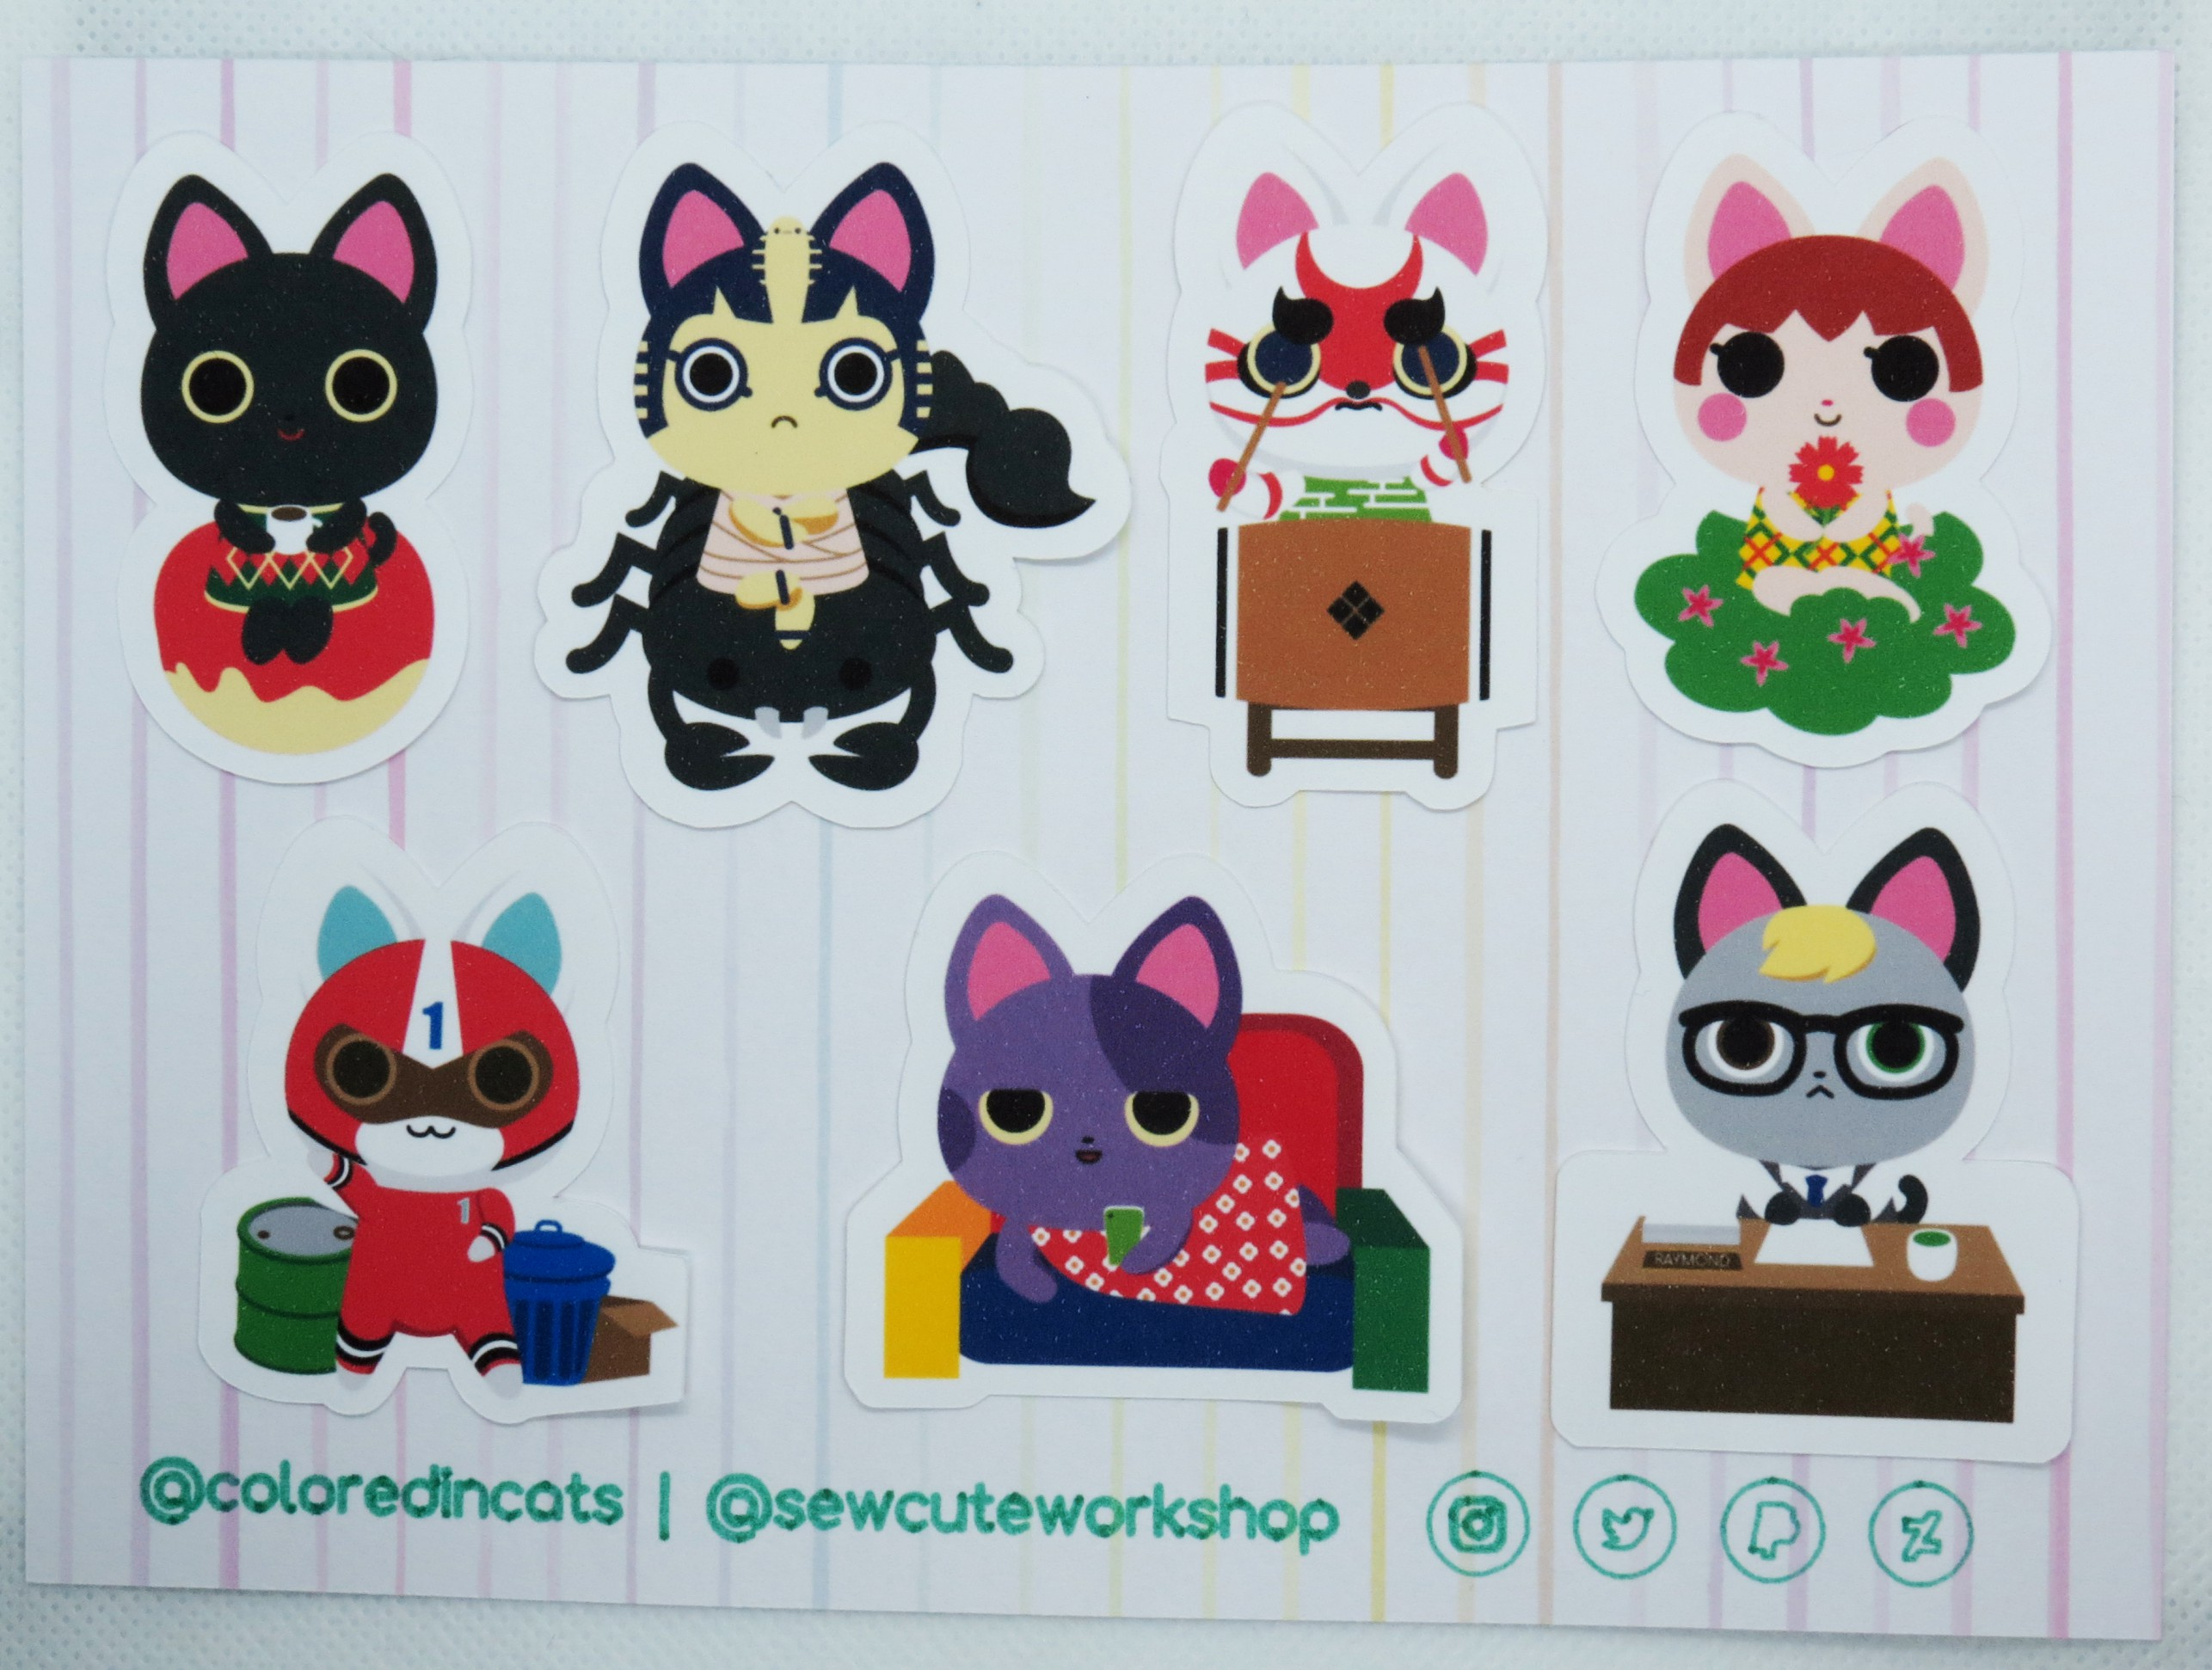 Animal Crossing Cat Villager Sticker Sheet 1 Sold By Sew Cute